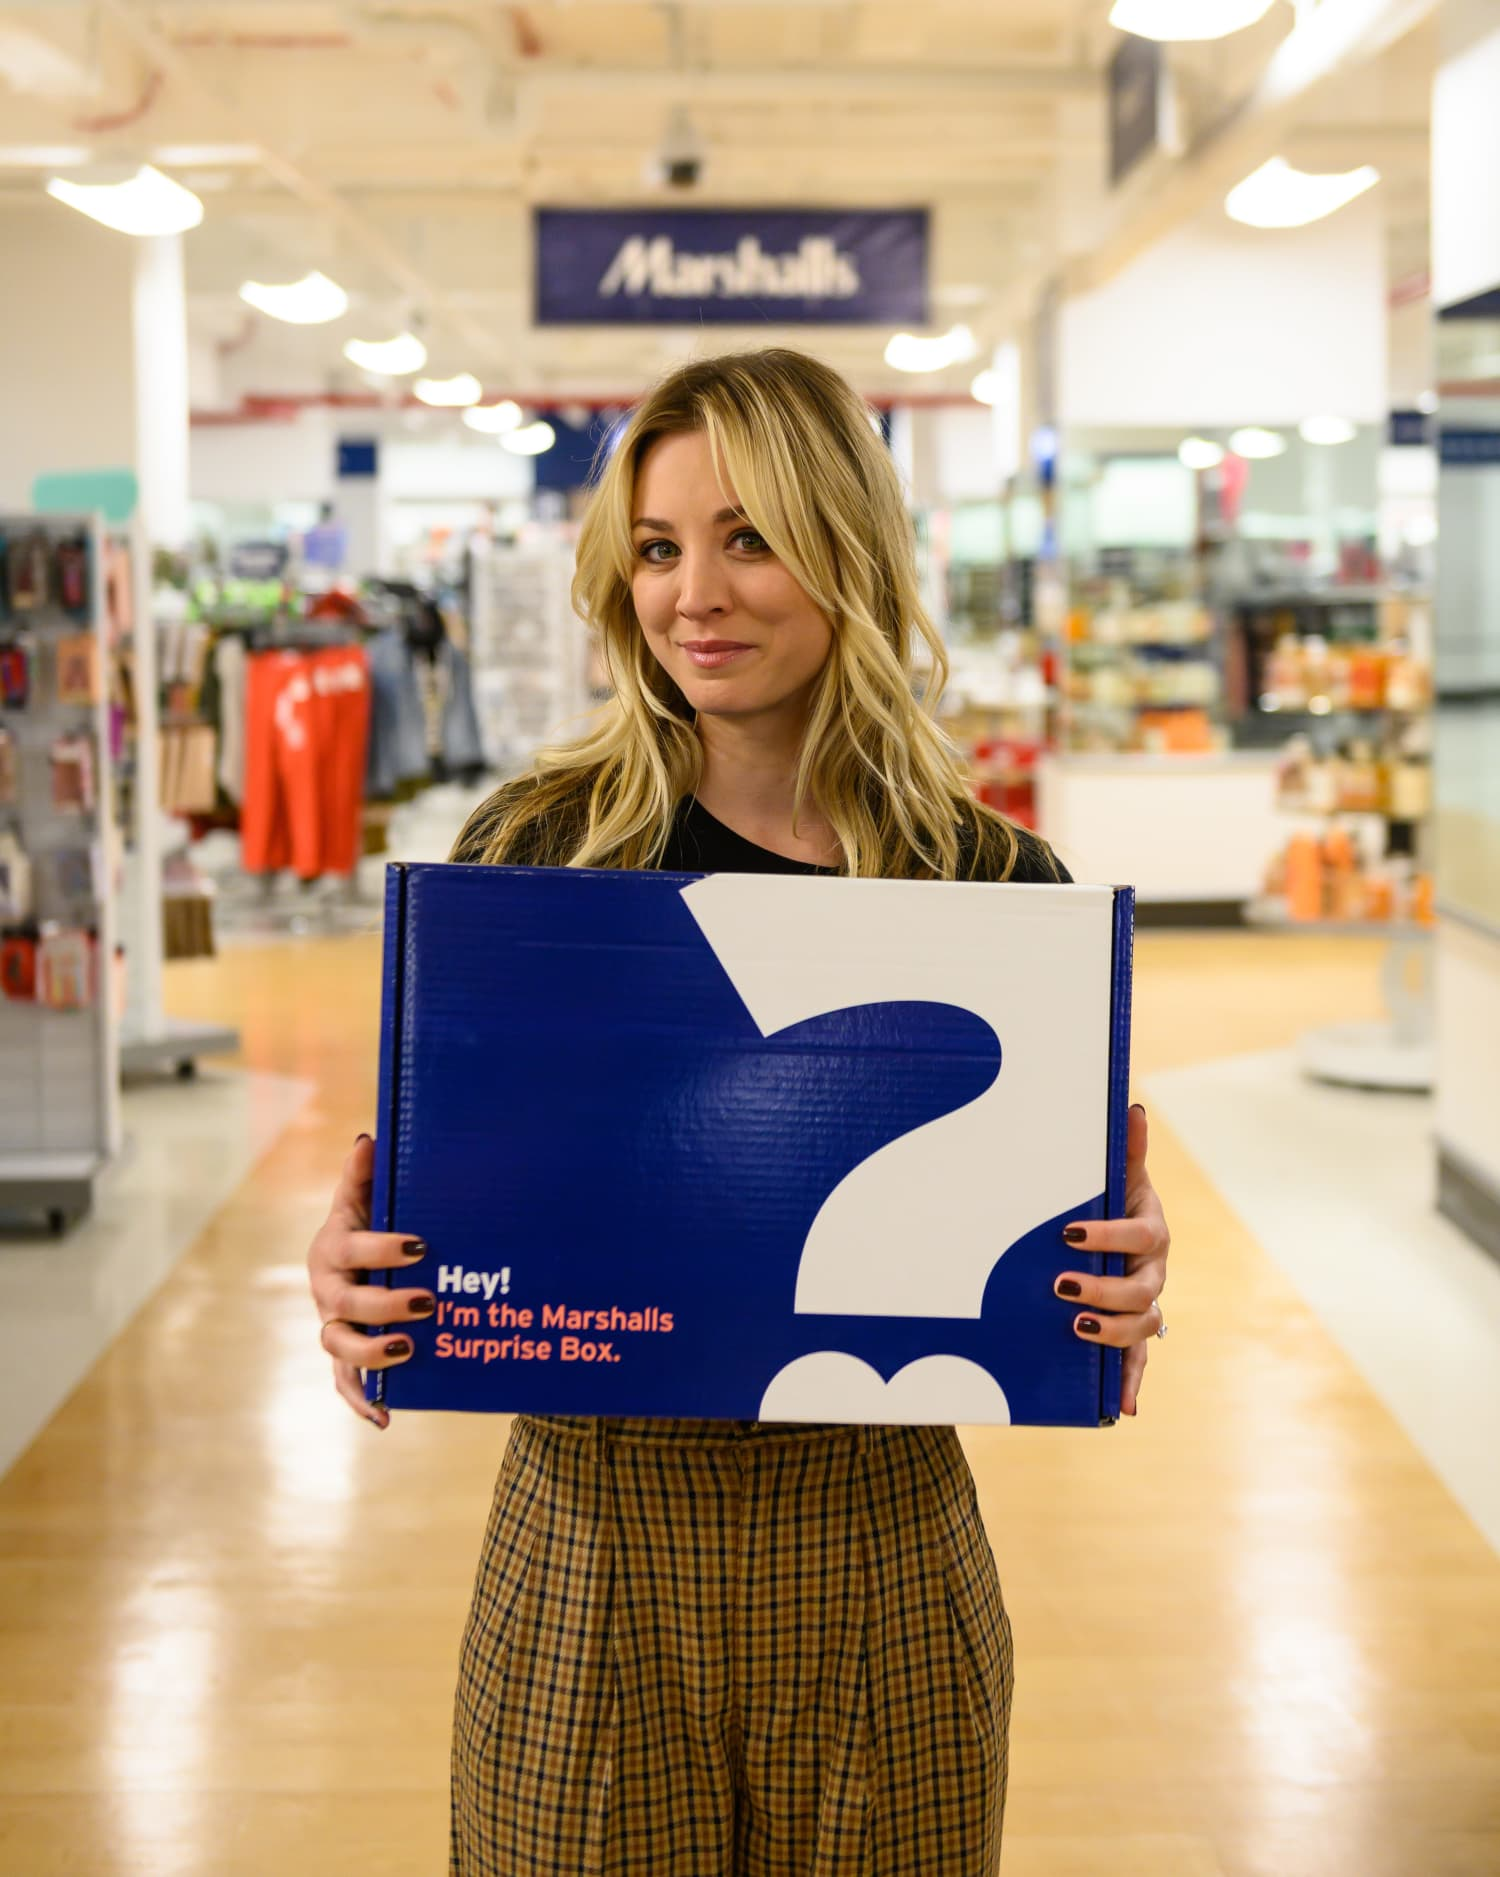 Marshalls Is Throwing a Shopping Scavenger Hunt—Here's How You Can Snag a 'Surprise Box' Today